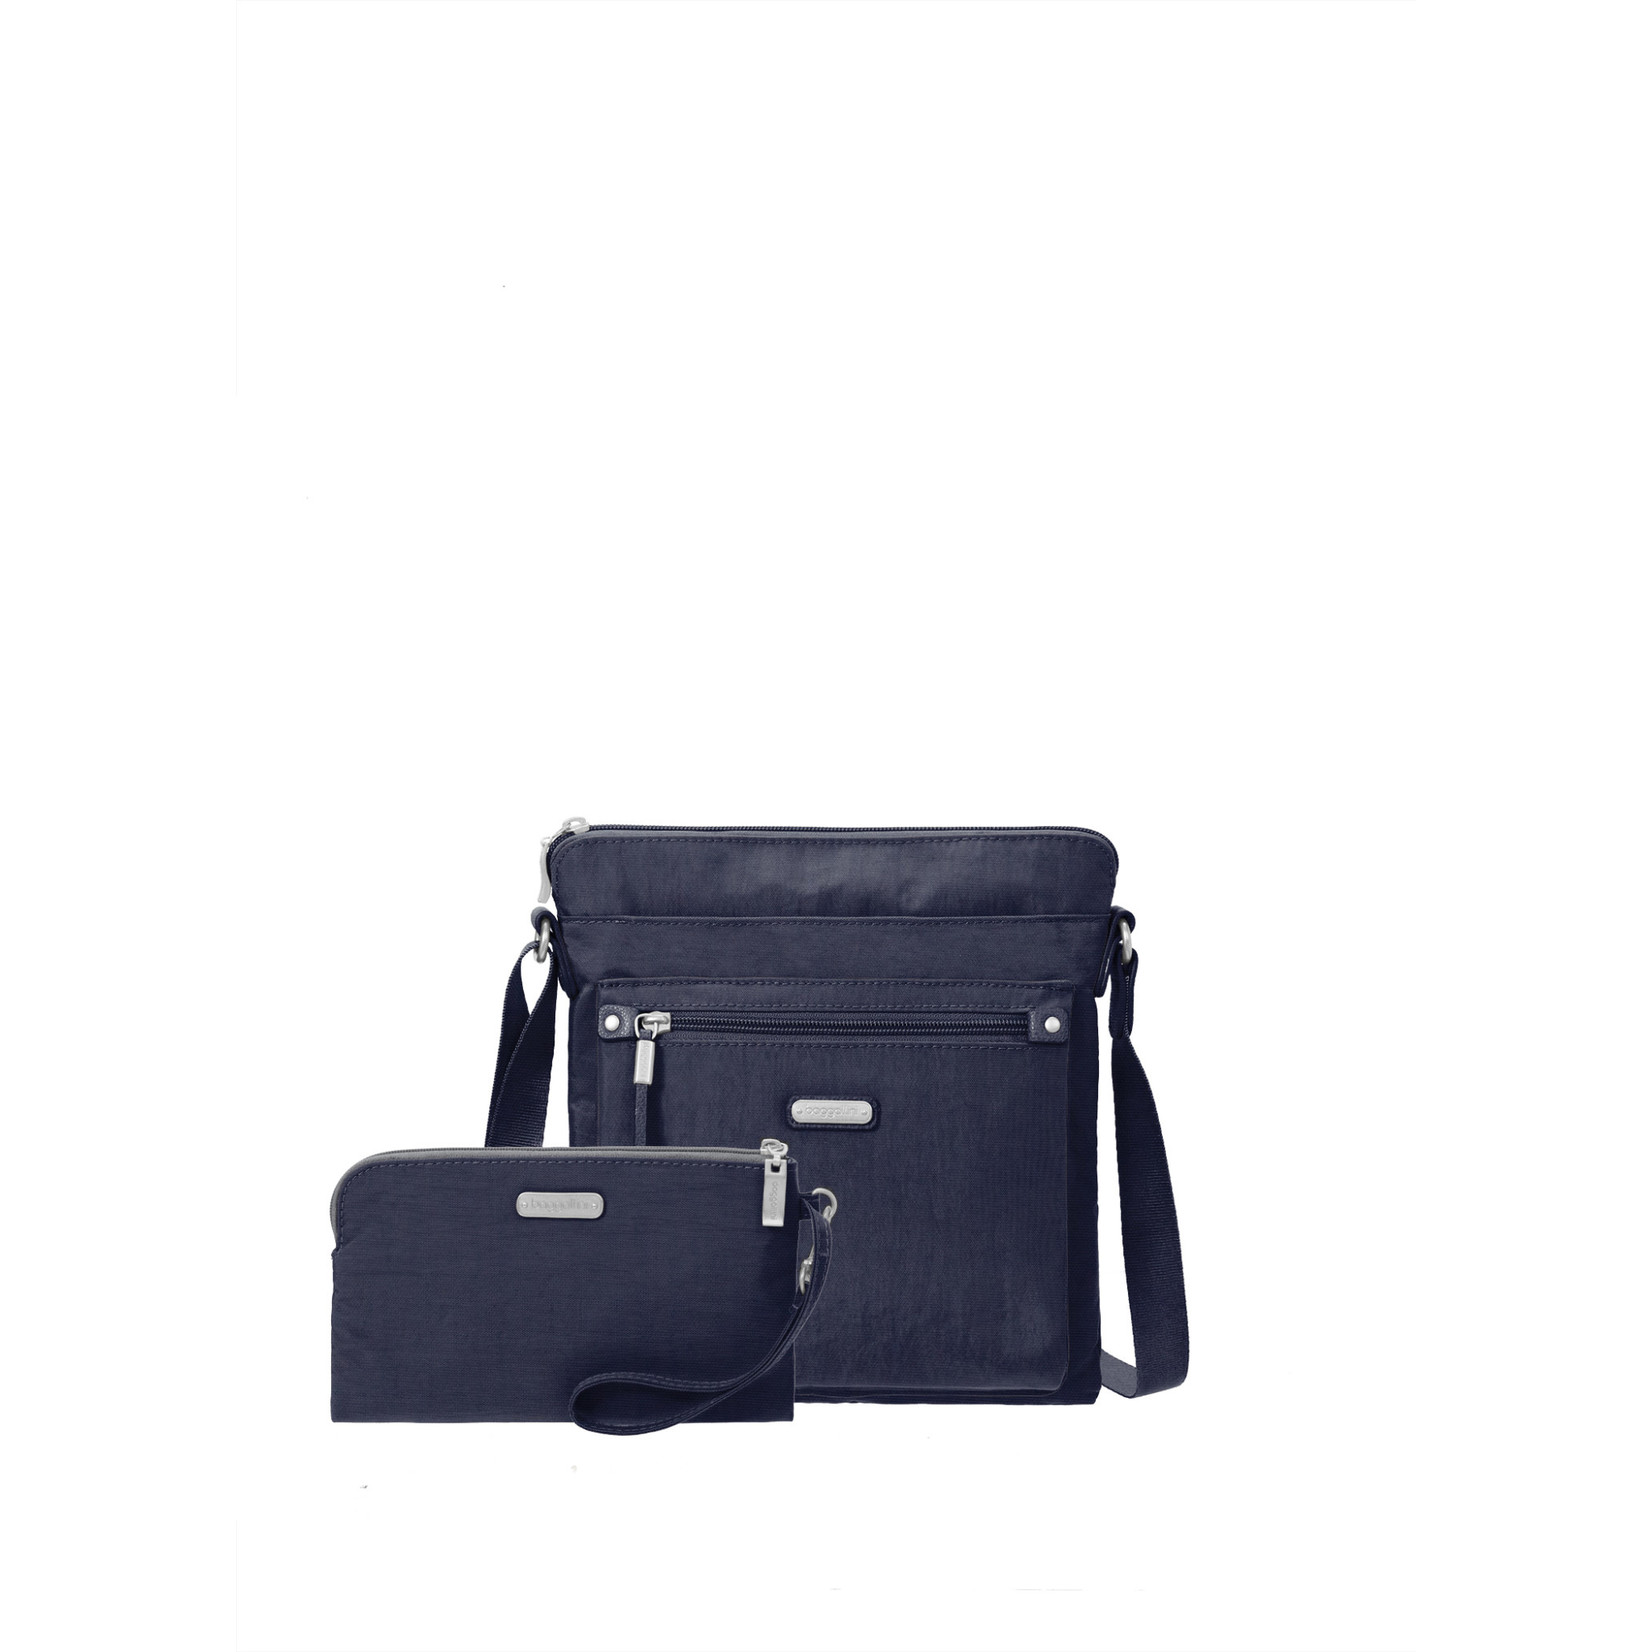 Baggallini Go Bagg with RFID Wristlet - Navy